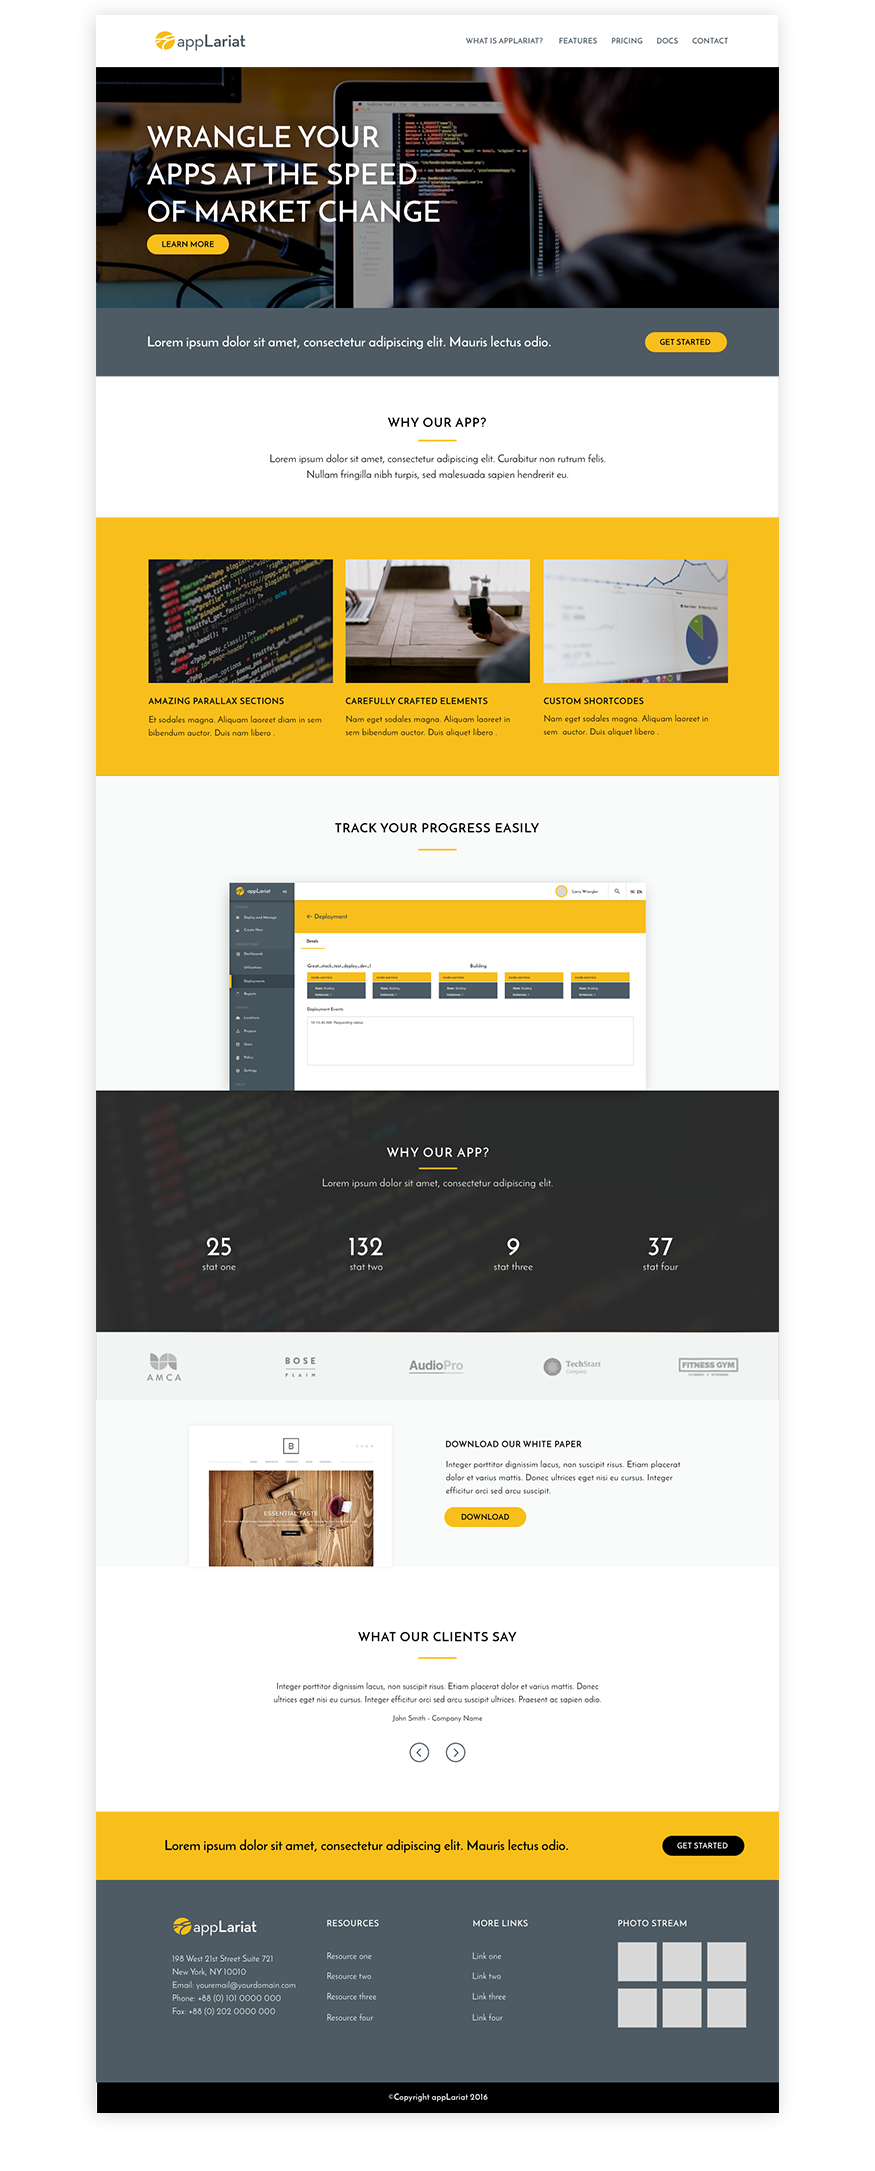 appLariat website design